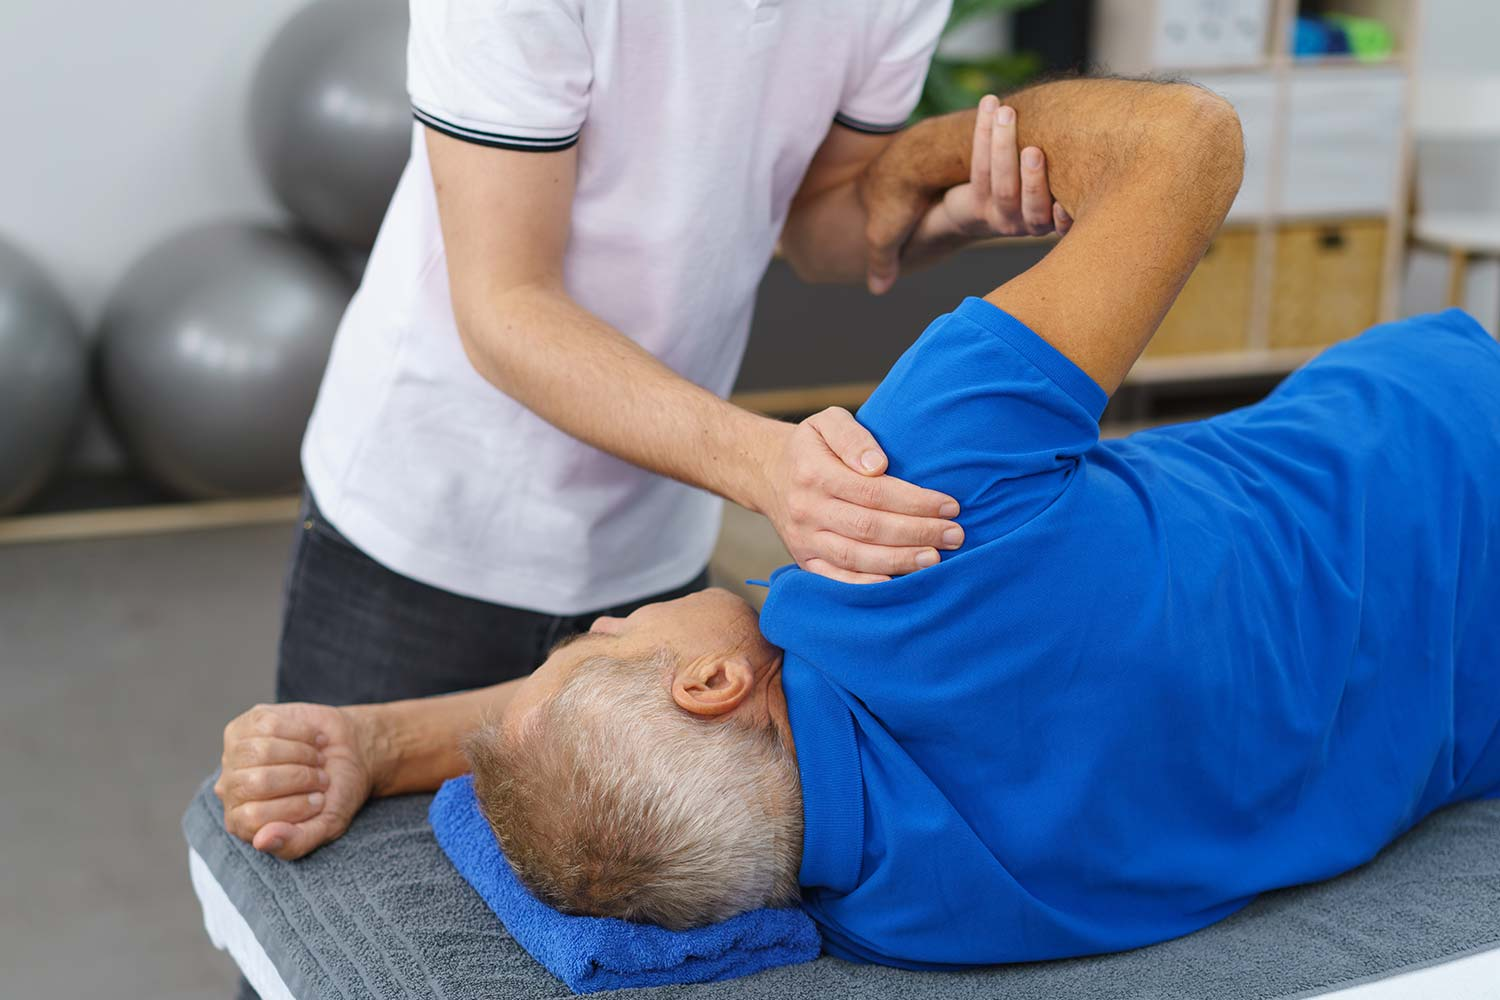 https://integratedhealthofsi.com/wp-content/uploads/2018/11/Physical_Therapy.jpg